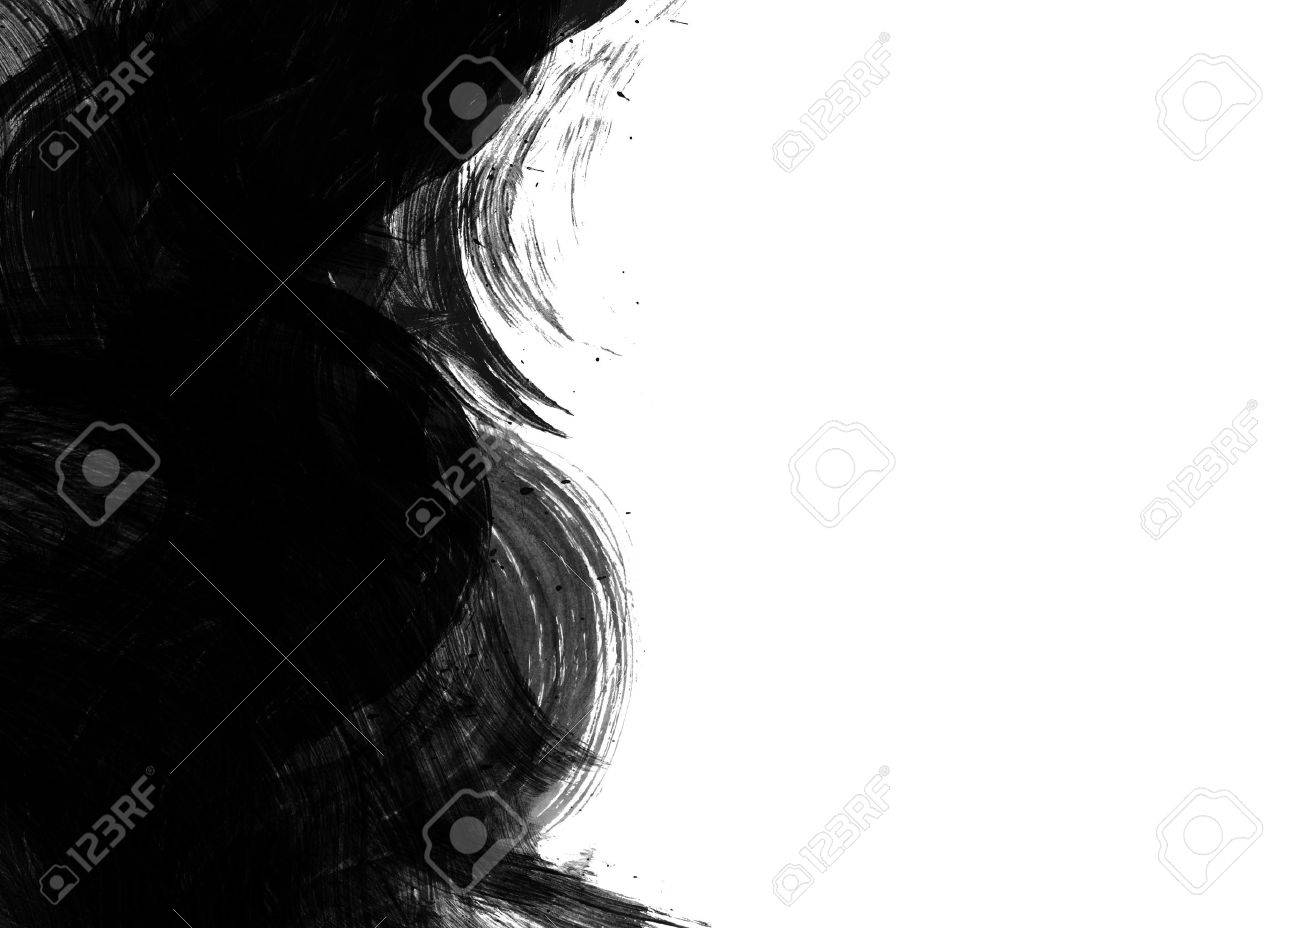 Black Water color on old paper texture background Stock Photo - 10618576